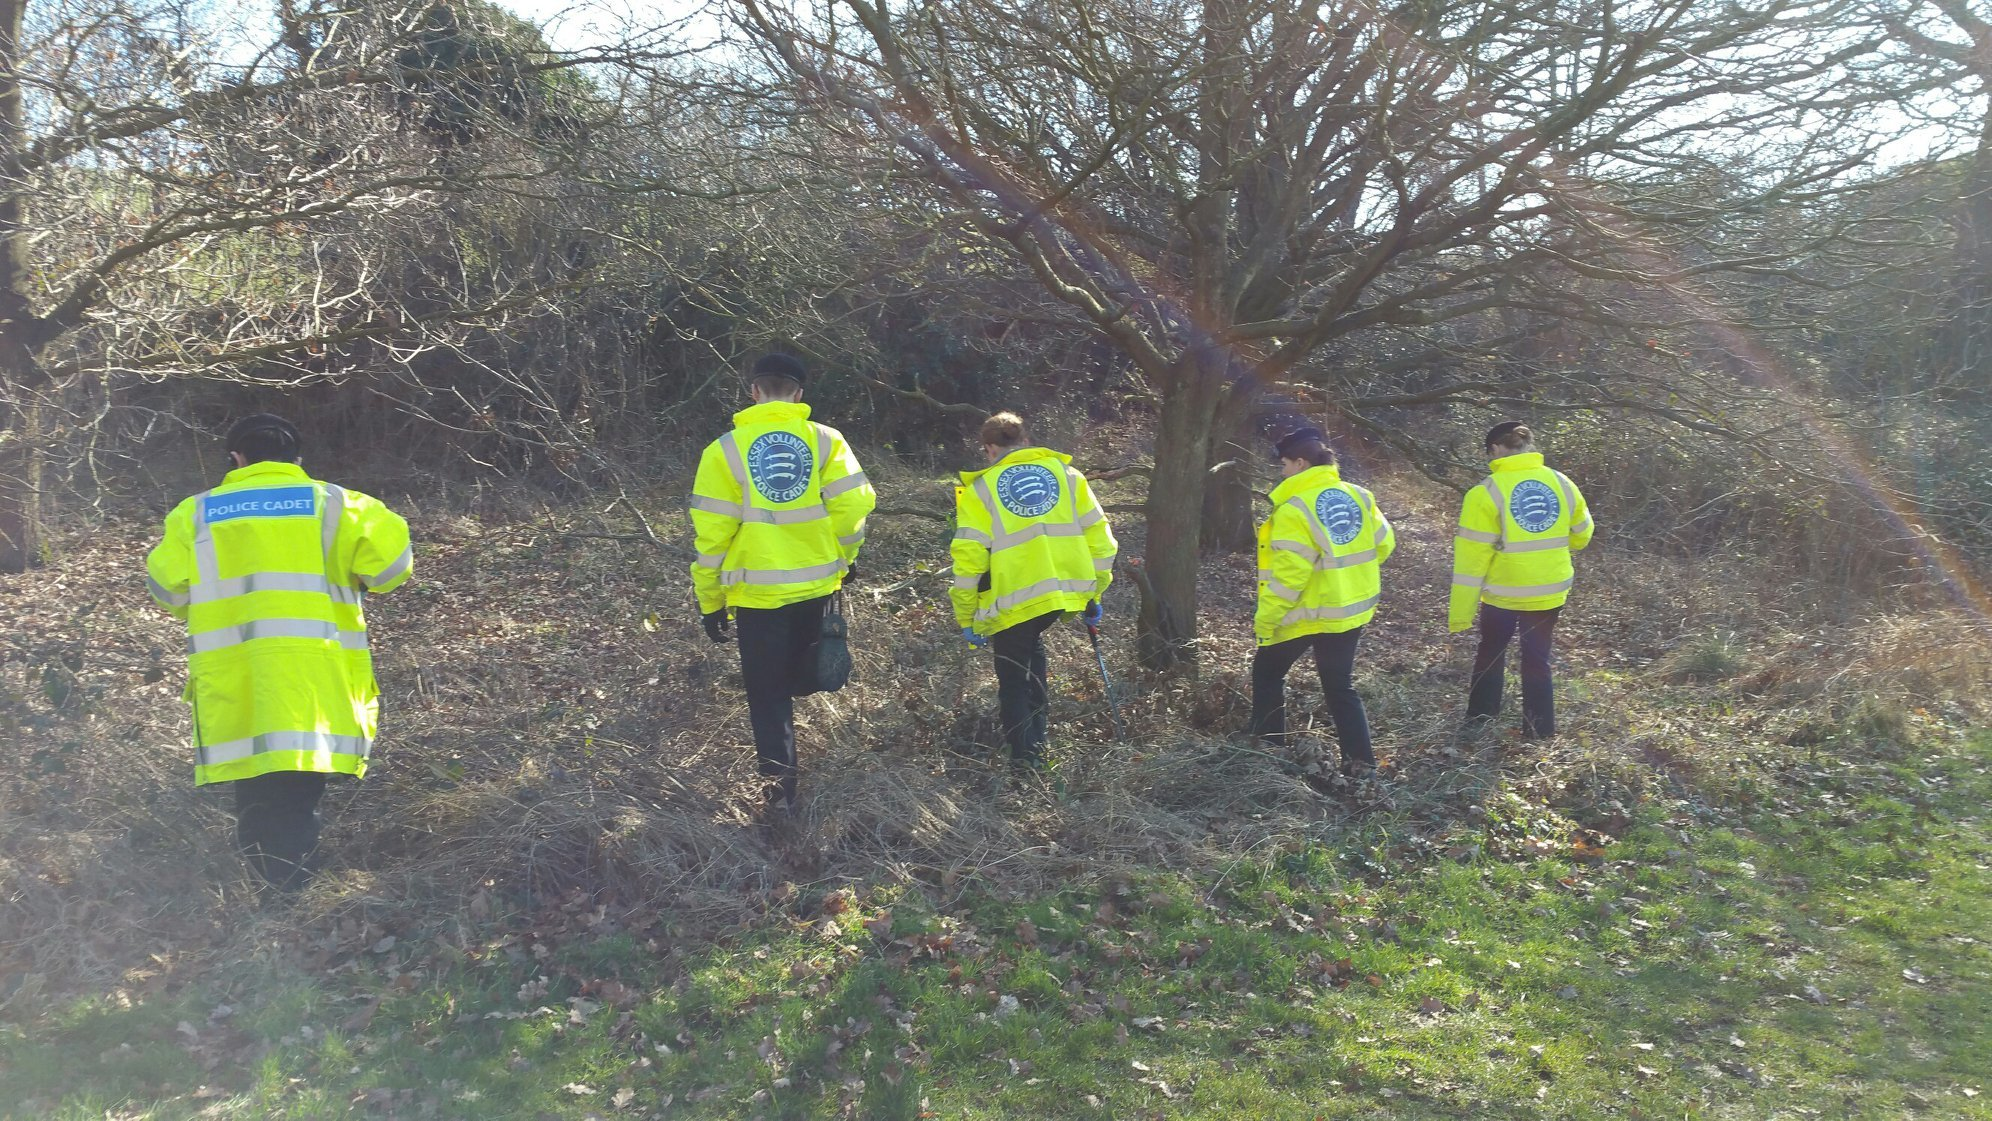 Search - police cadets searching Magnolia Fields in Greenstead, Colchester